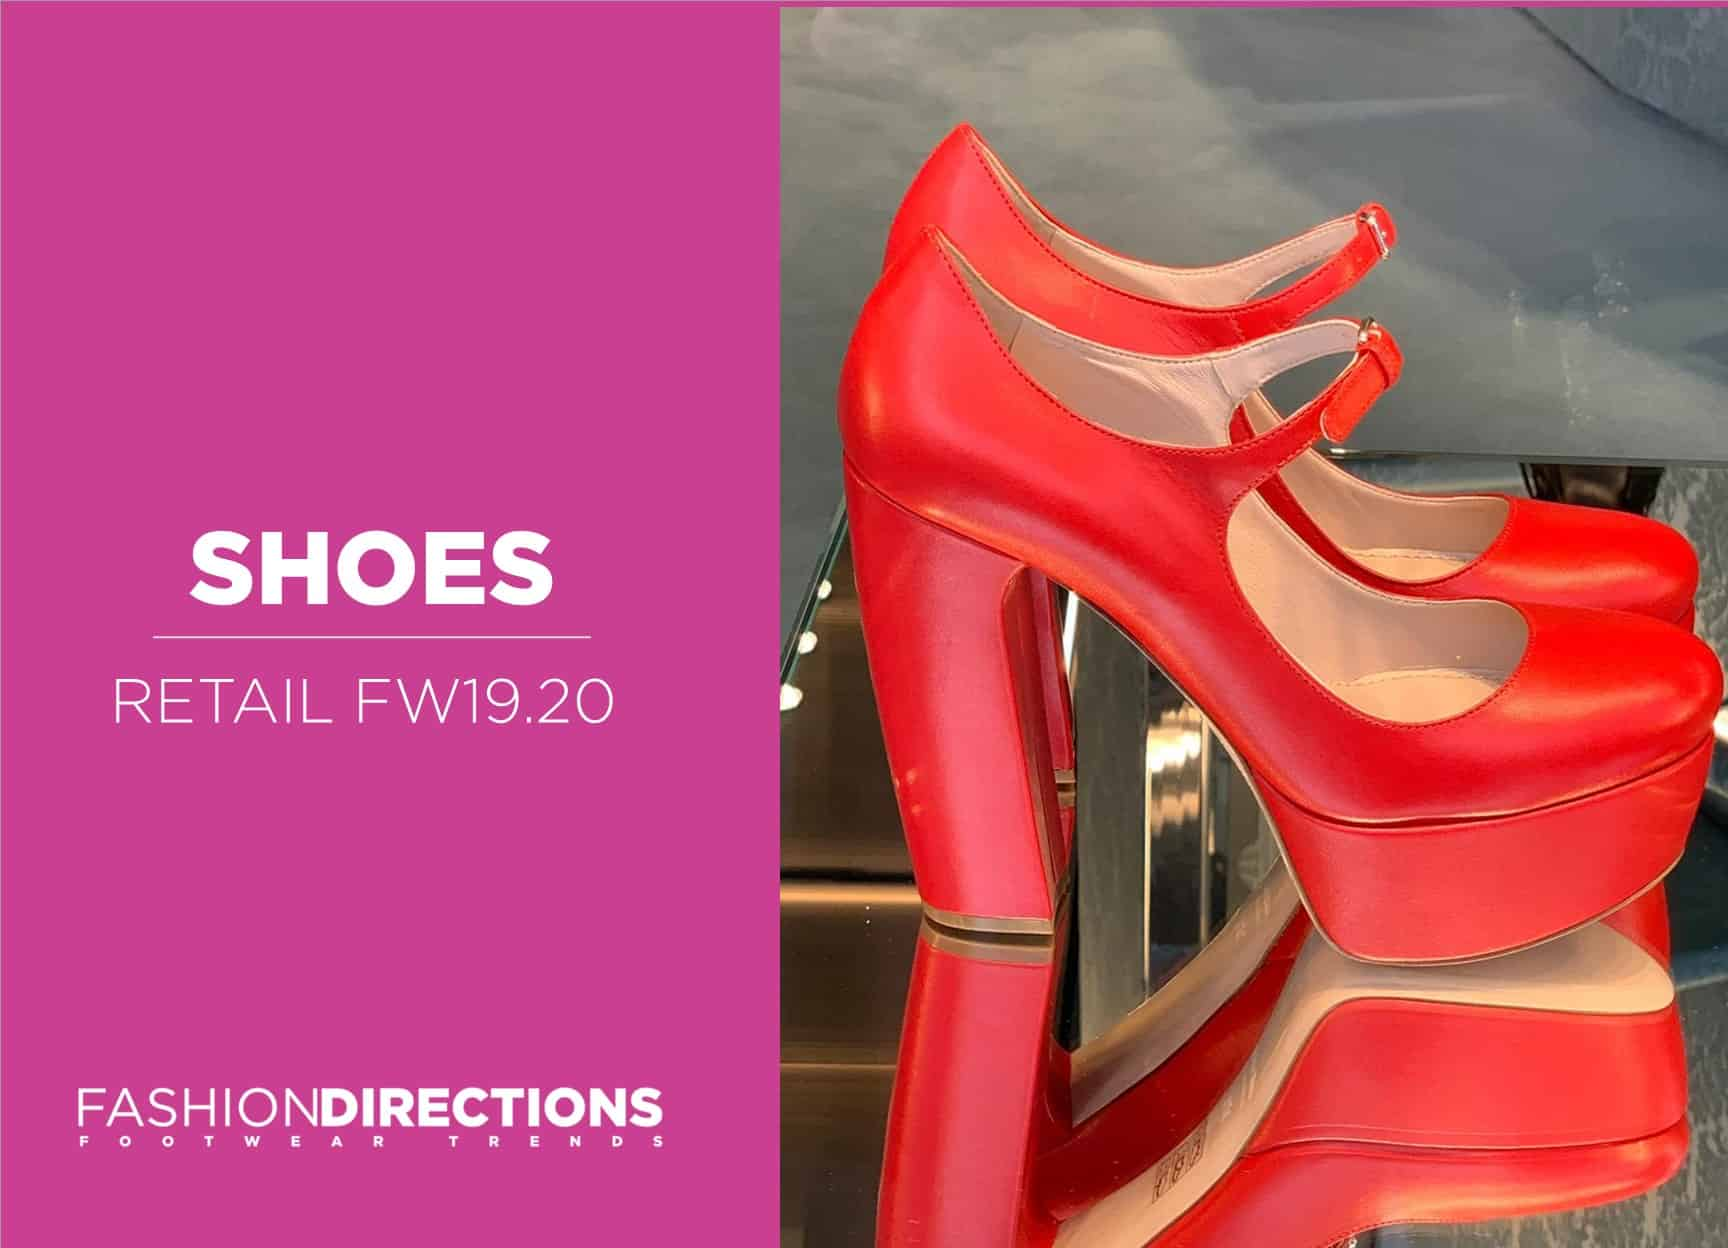 Womens Shoes Fw19.20 Images